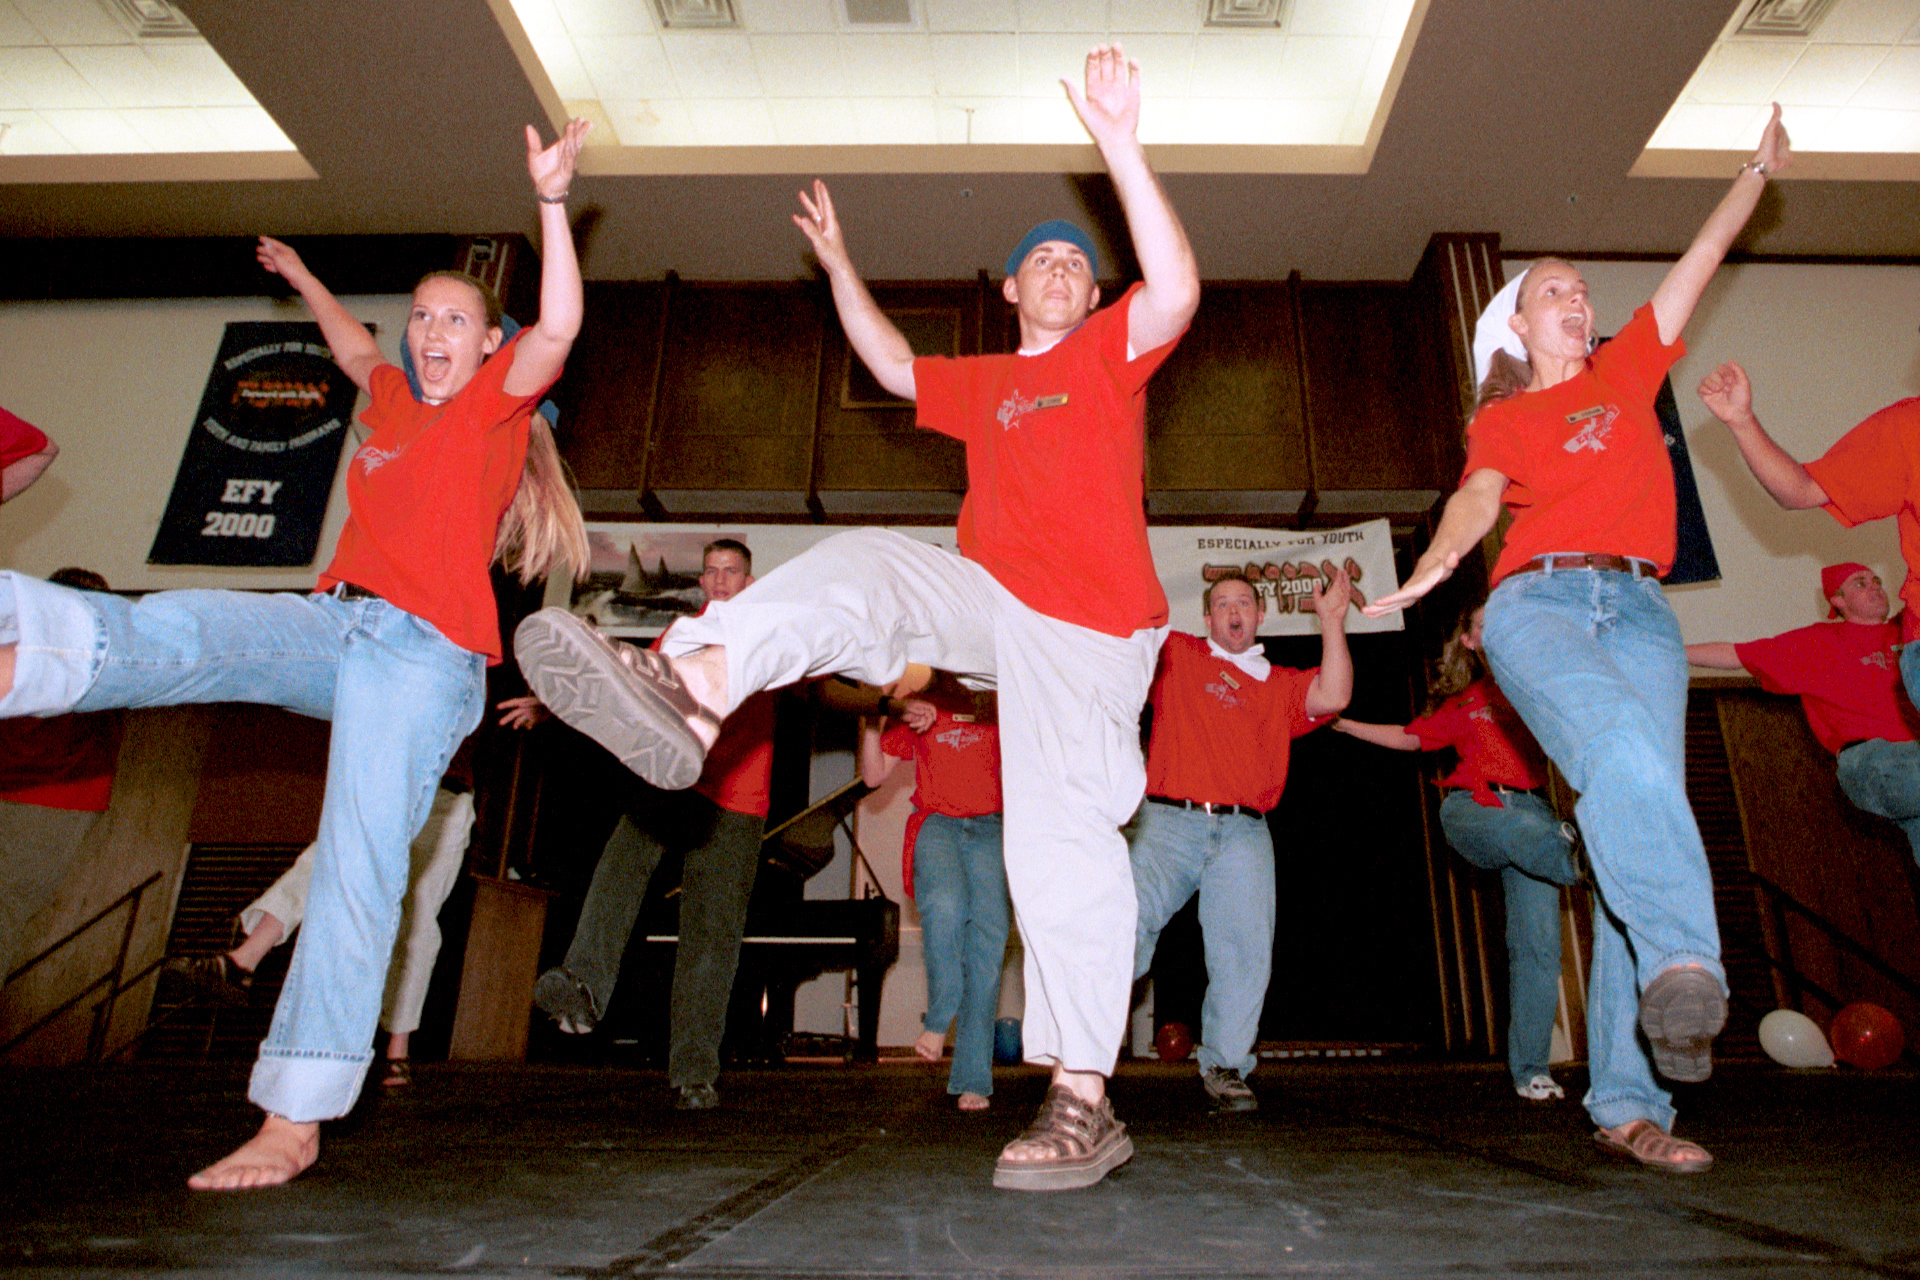 Young people dance during an activity at Especially for Youth in 2000.